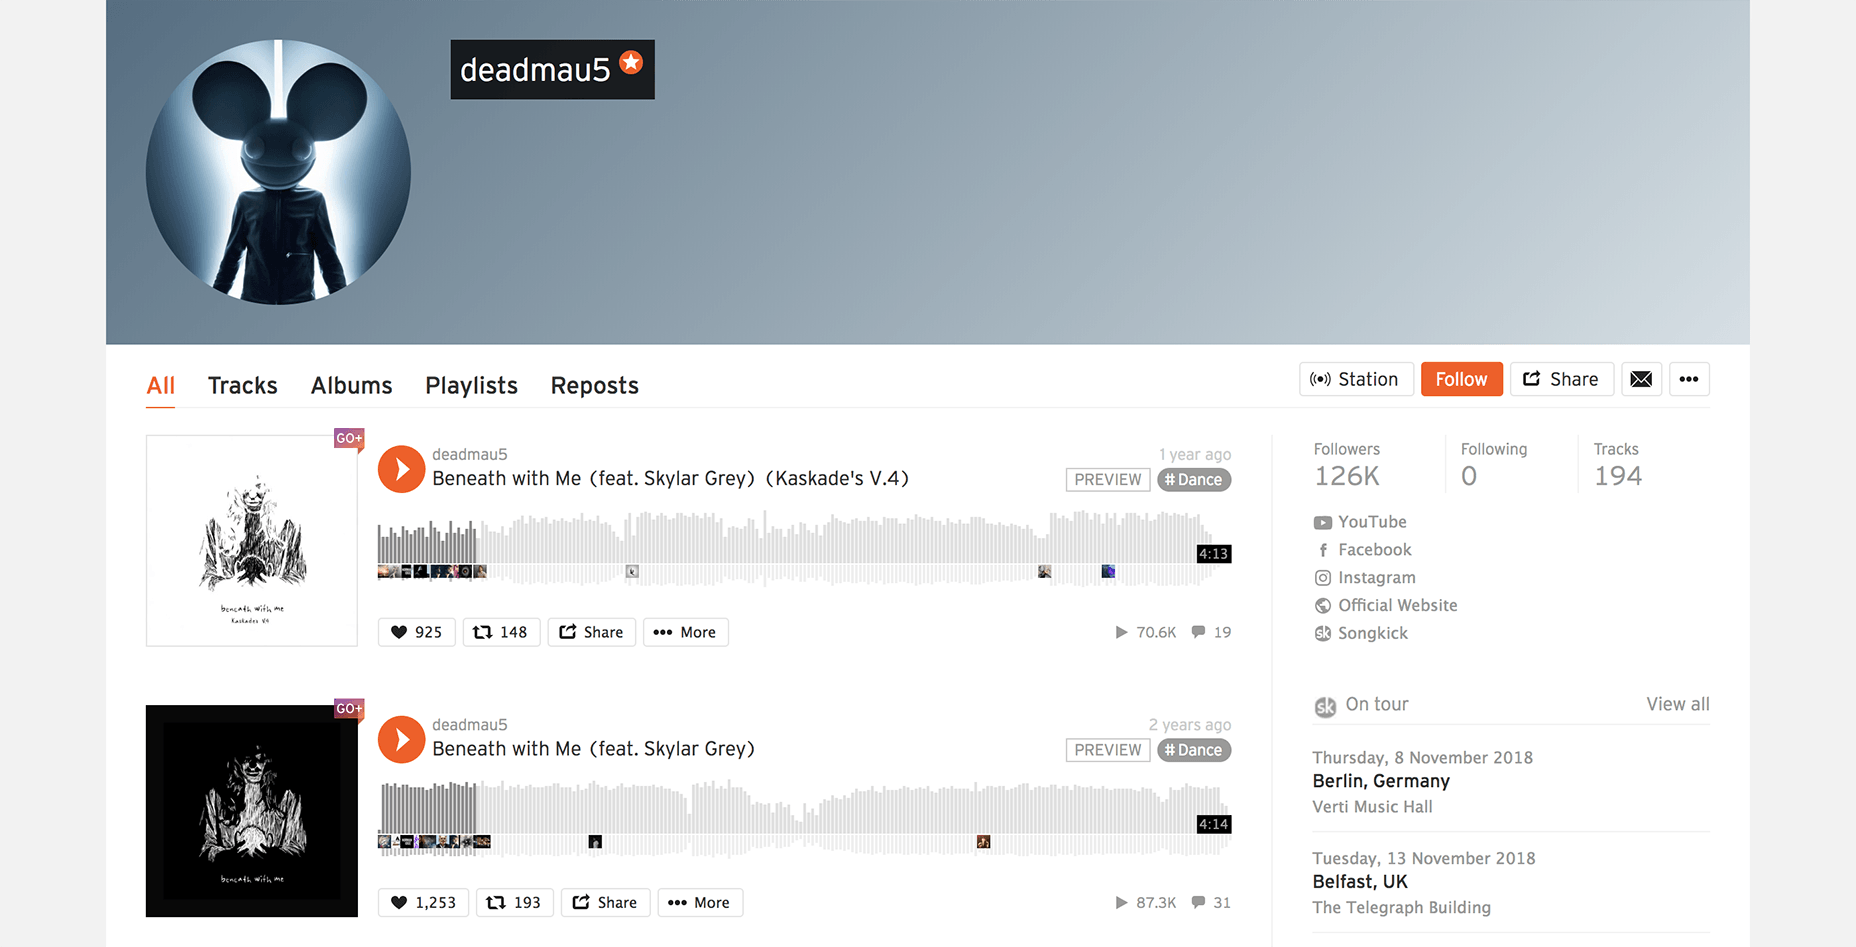 Deadmau5 on SoundCloud